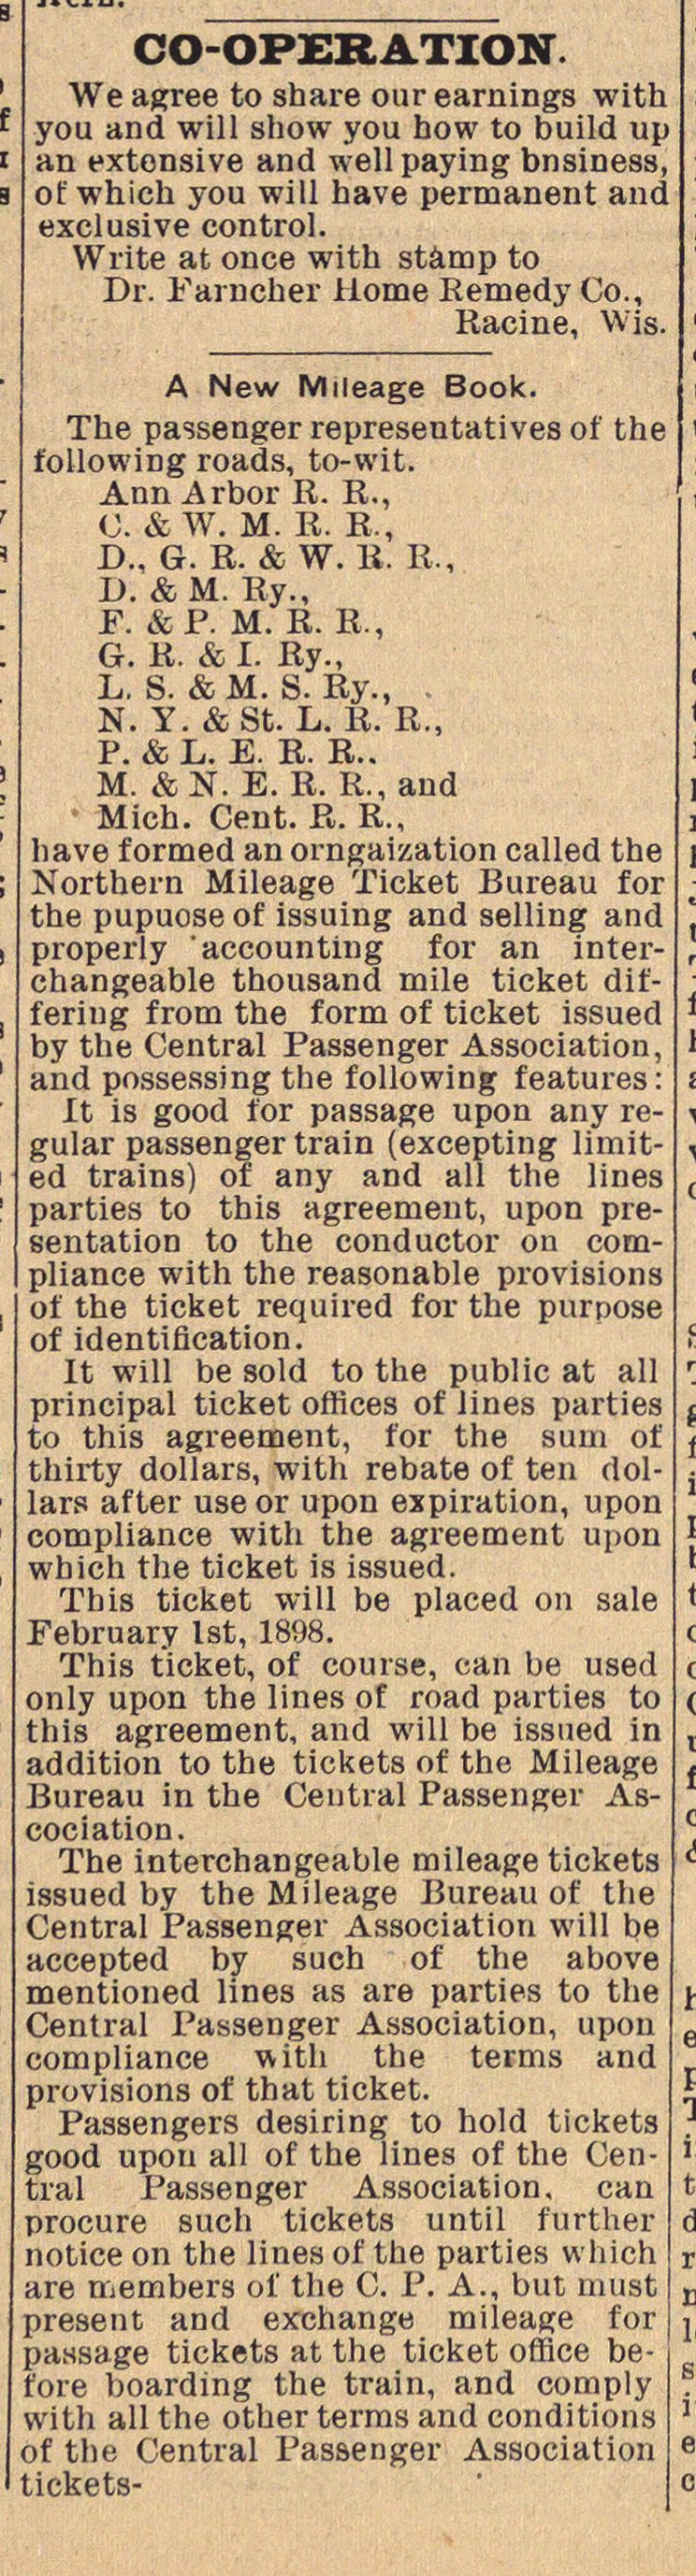 Classified Ads: Dr. Farncher Home Remedy Co. & Northern Mileage Ticket Bureau image